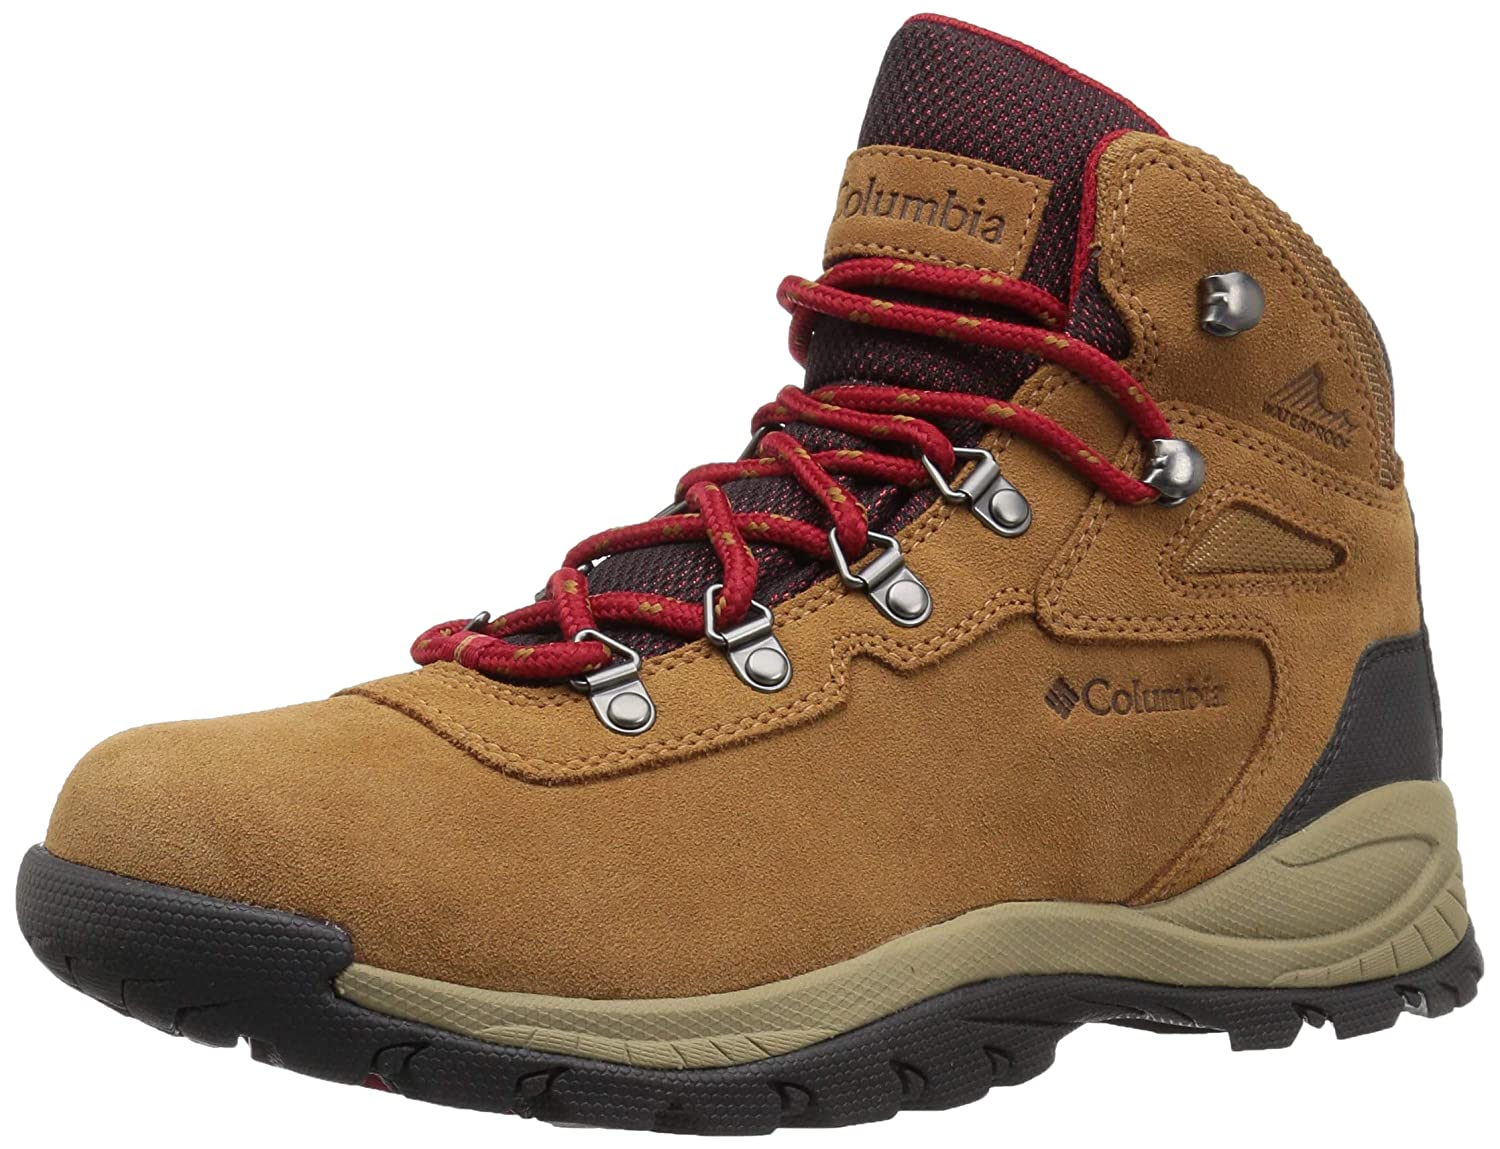 Columbia Women's Newton Ridge Plus Waterproof